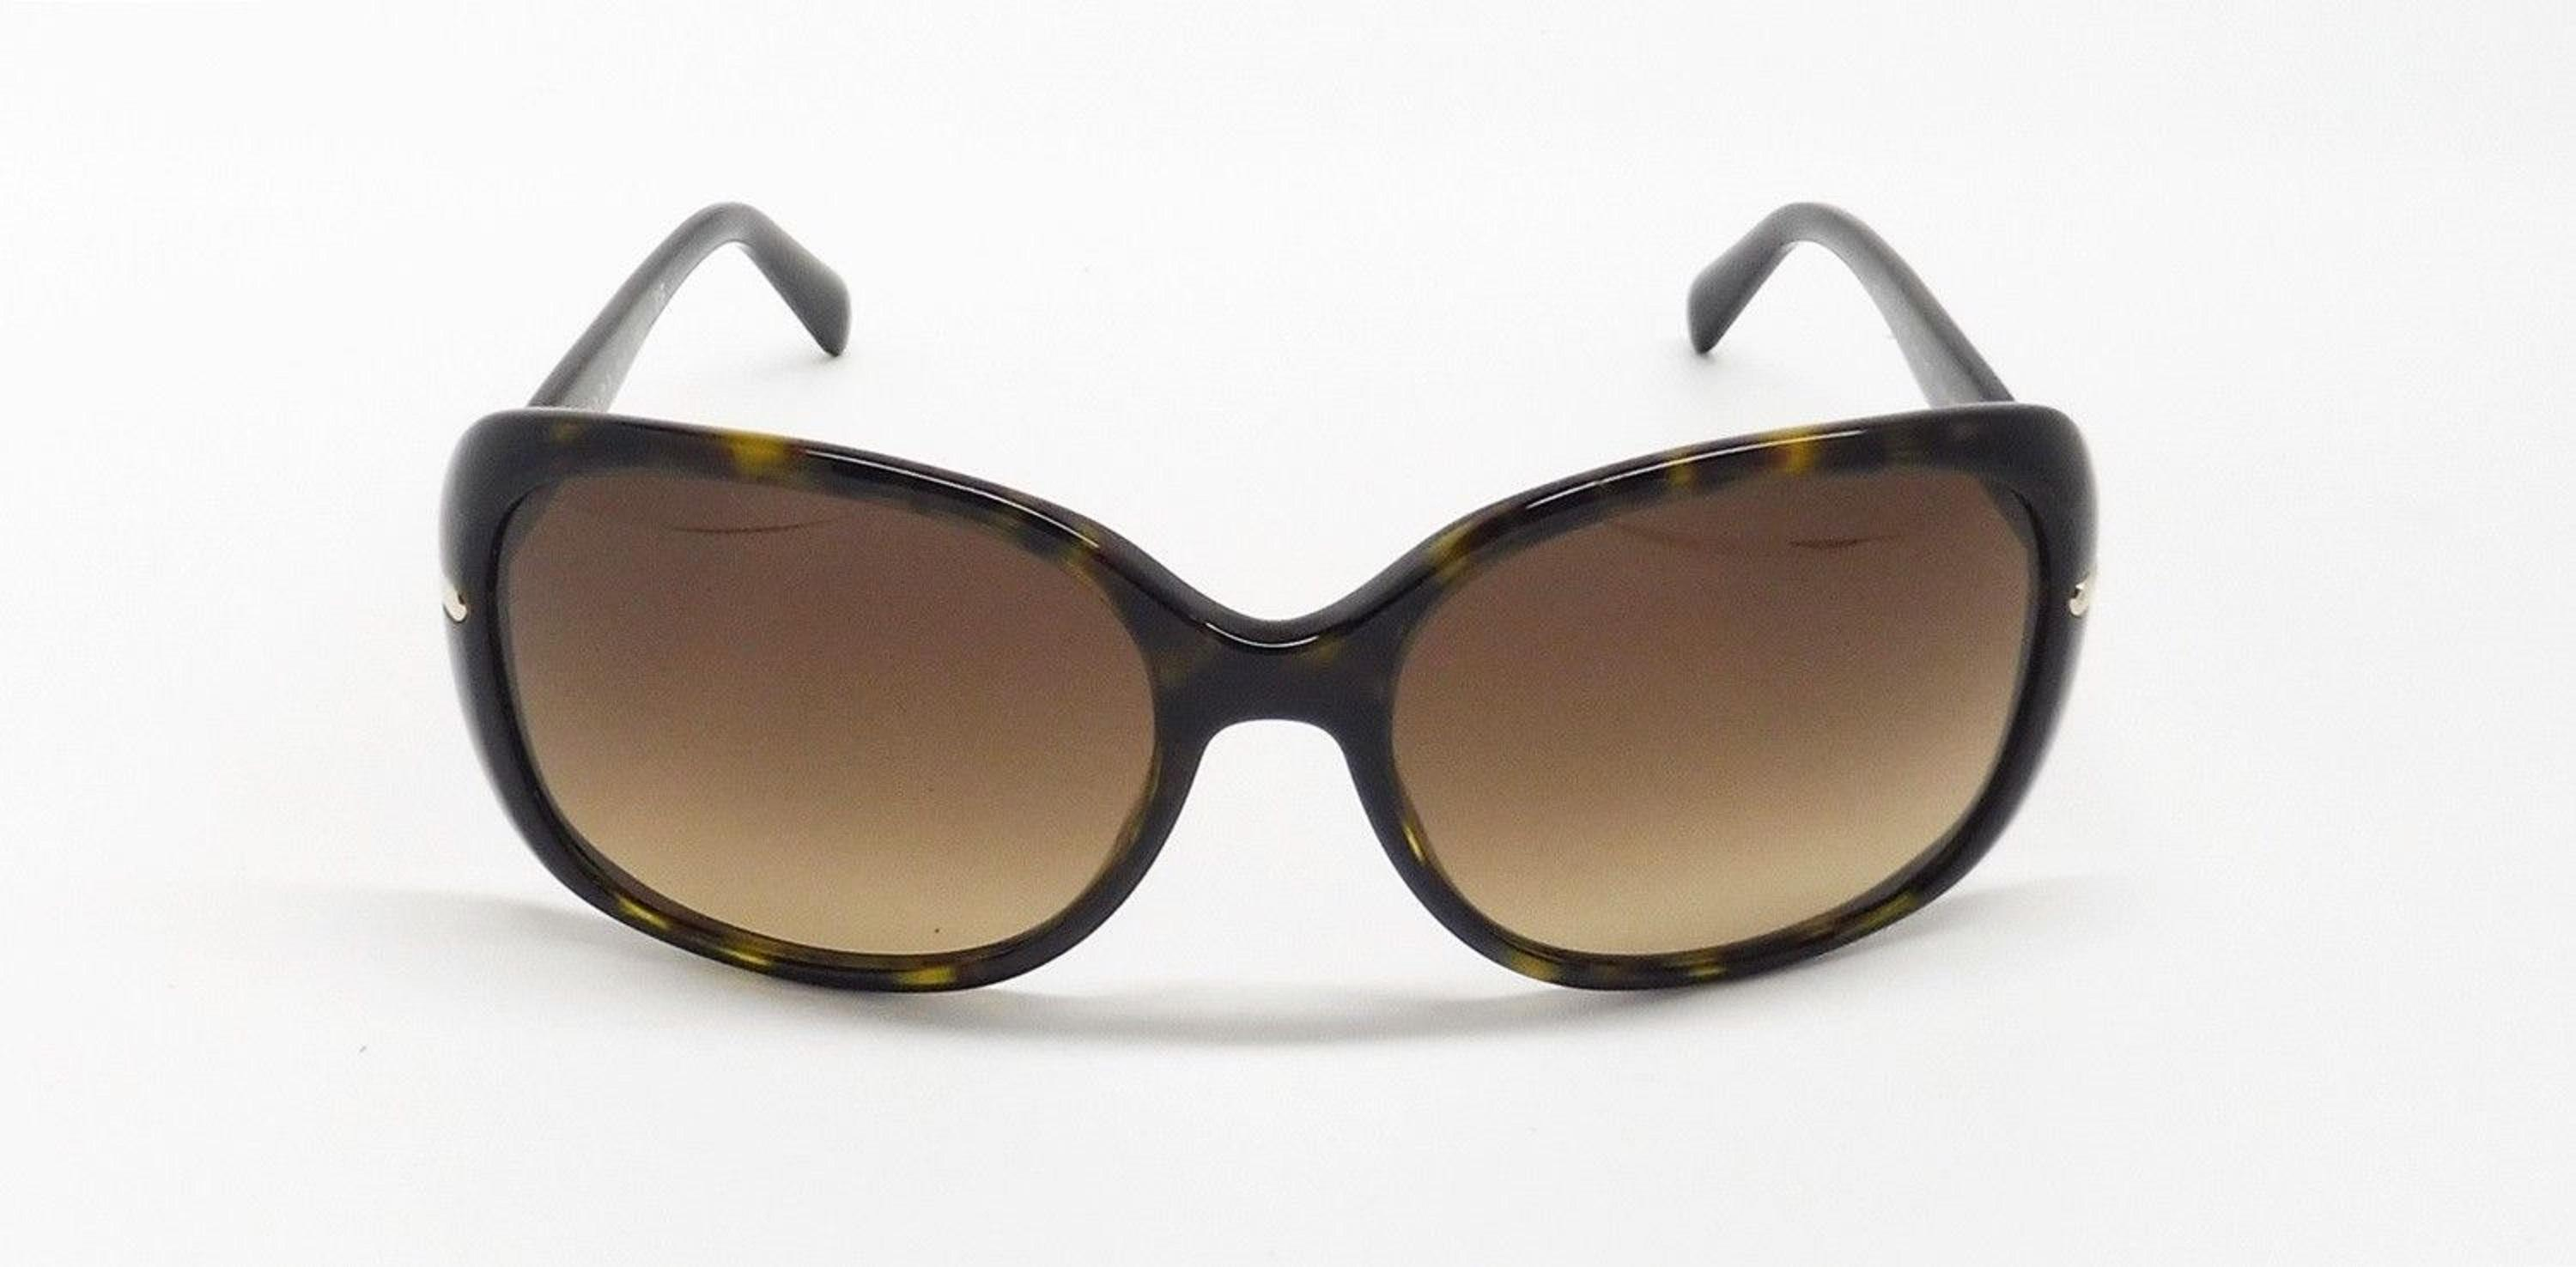 5e7e060054568 ... clearance prada brown tortoise with gold accents spr 08o stylish  sunglasses 3f264 5fa00